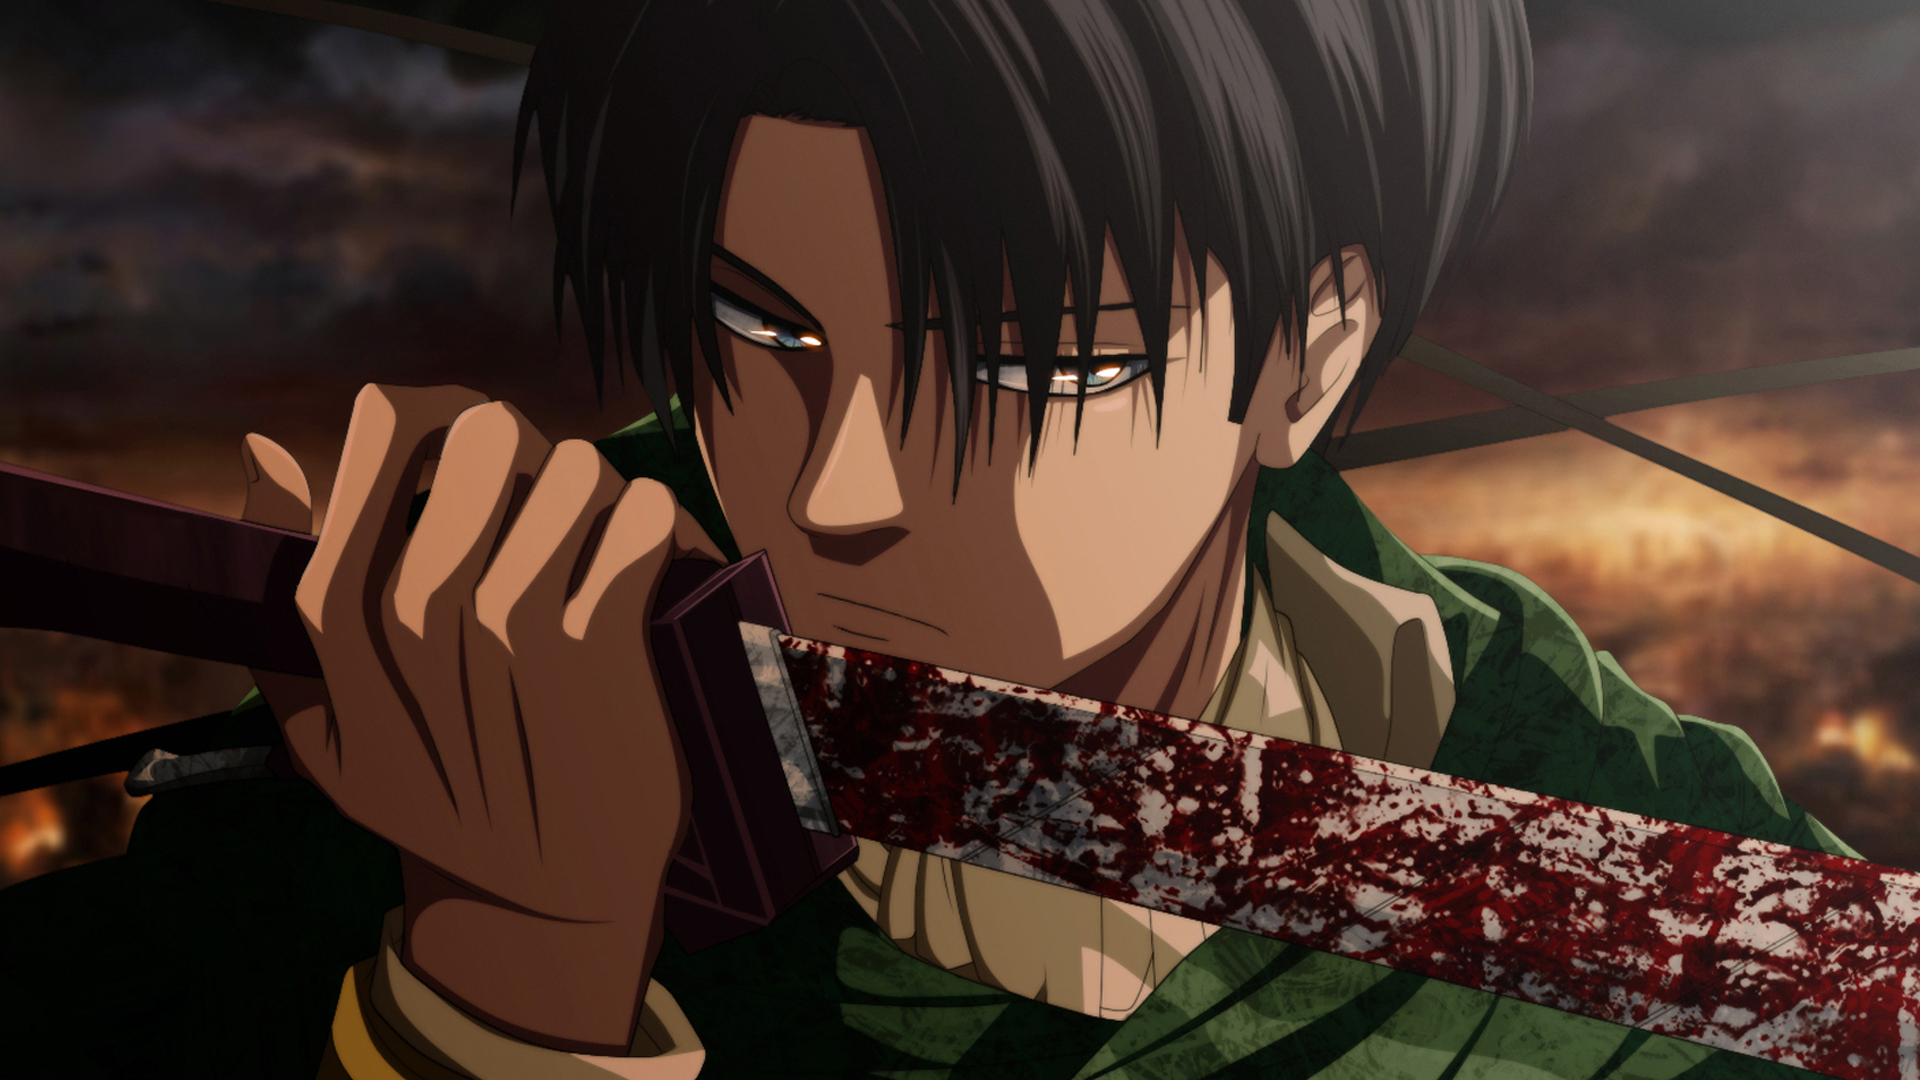 Explore levi wallpaper on wallpapersafari   find more items about aot levi wallpaper. Levi HD Wallpapers